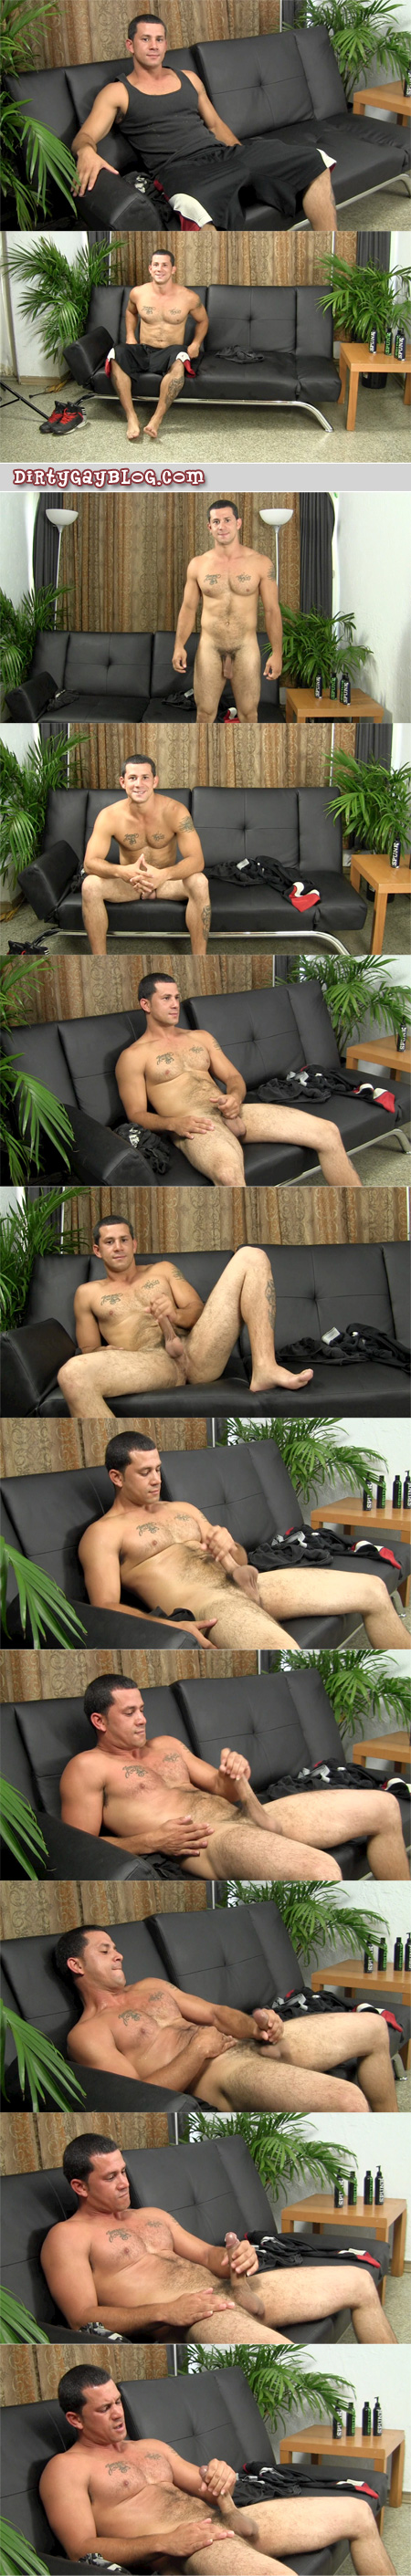 Well-hung, hairy Latino dad jacking his enormous uncut cock.